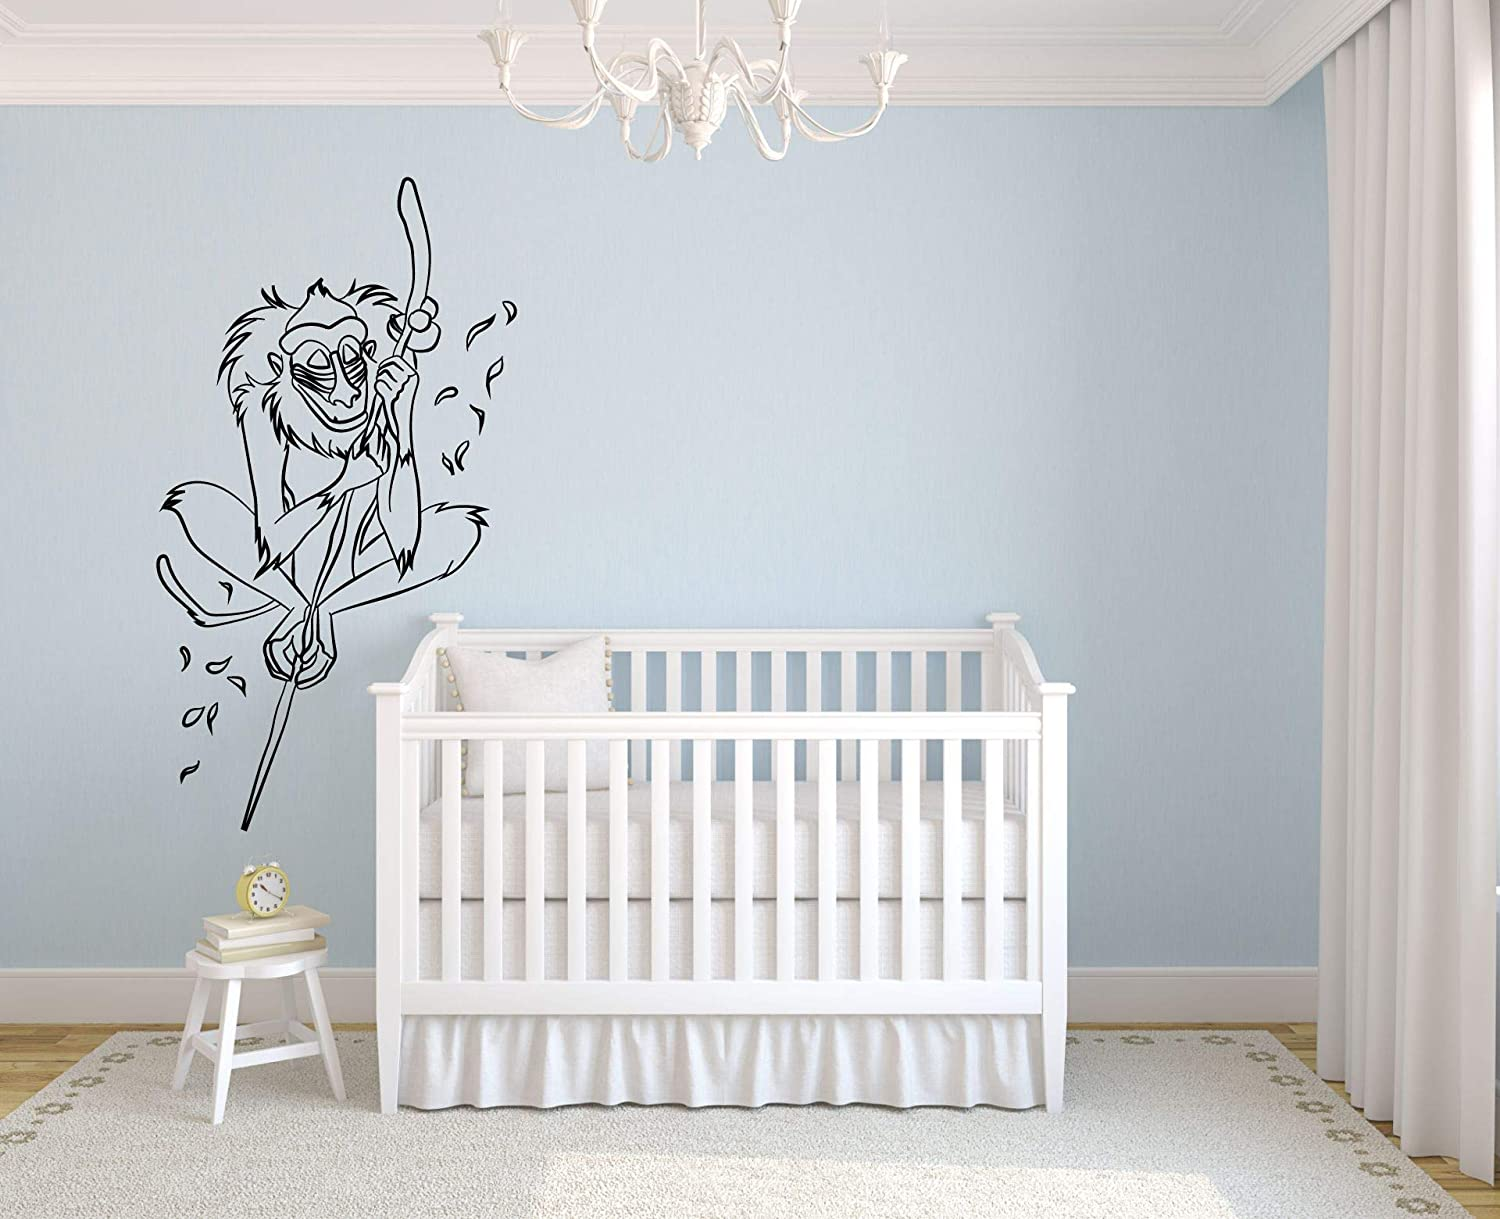 Rafiki The Lion King Wall Decals for Kids Rooms Simba Mufasa Decor Lions Boys Girls Creative Animated Vinyl Decal Removable Stickers for Bedrooms Artwork Child Favorite Decoration Size (15x12 inch)